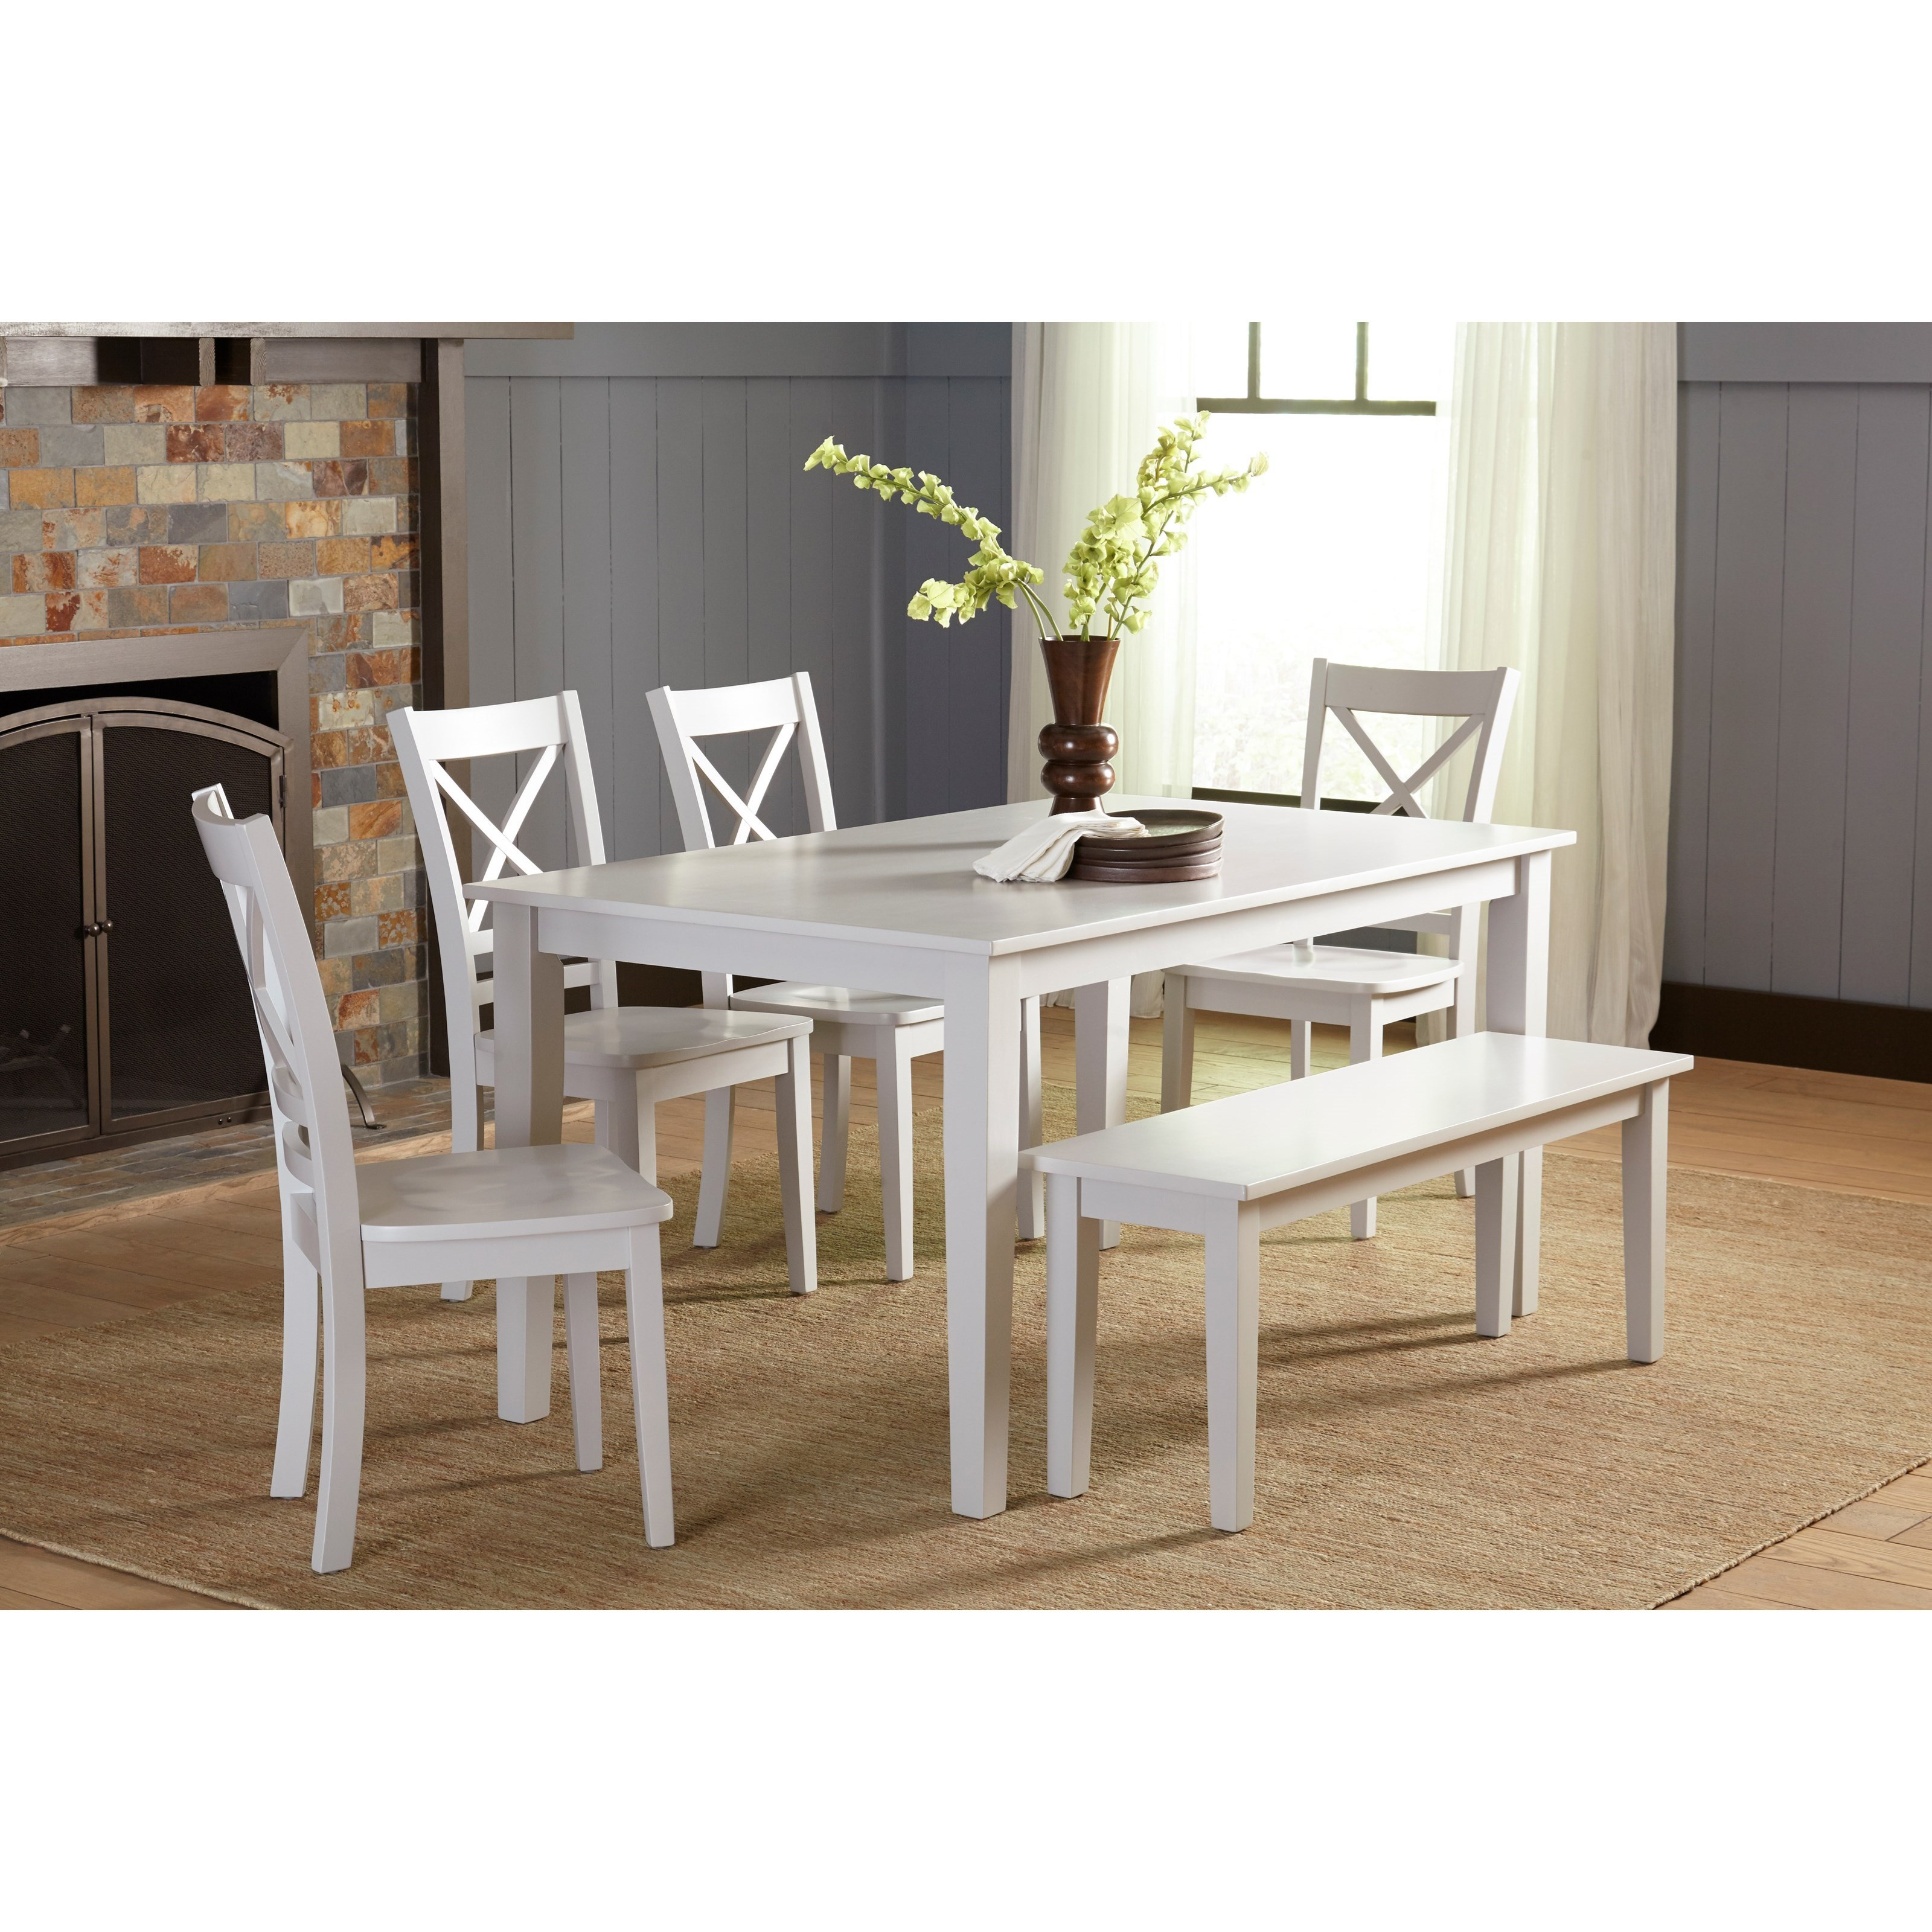 Jofran Simplicity Dining Table and ChairBench Set  Value